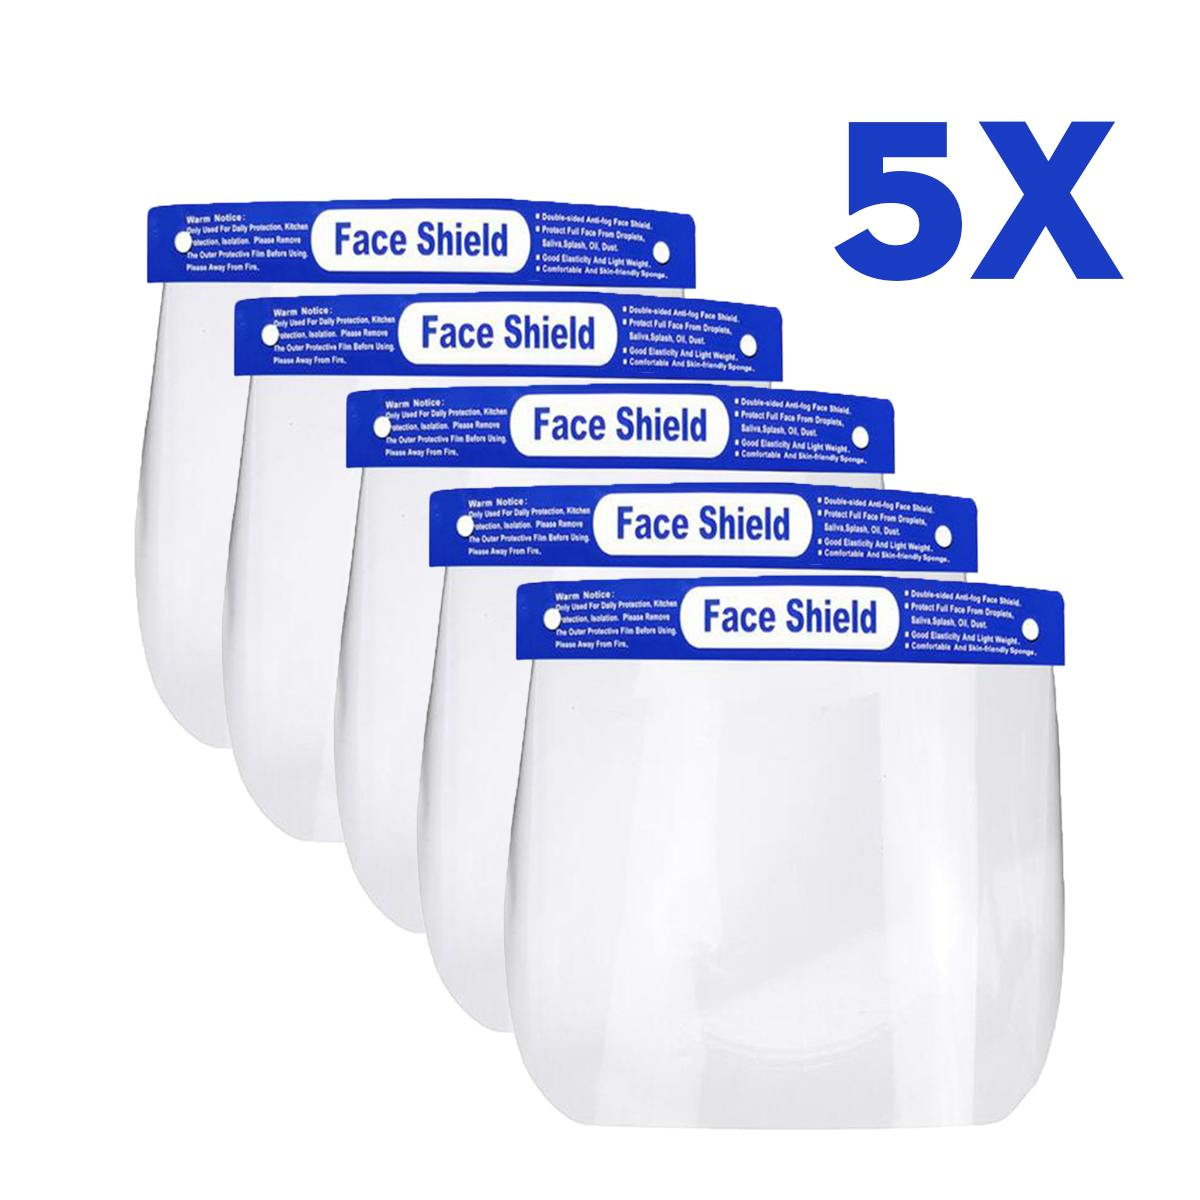 5PCS Transparent Anti Droplet Dust-proof Protect Full Face Covering Mask Safety Protection Visor Shield Stop The Flying Spit